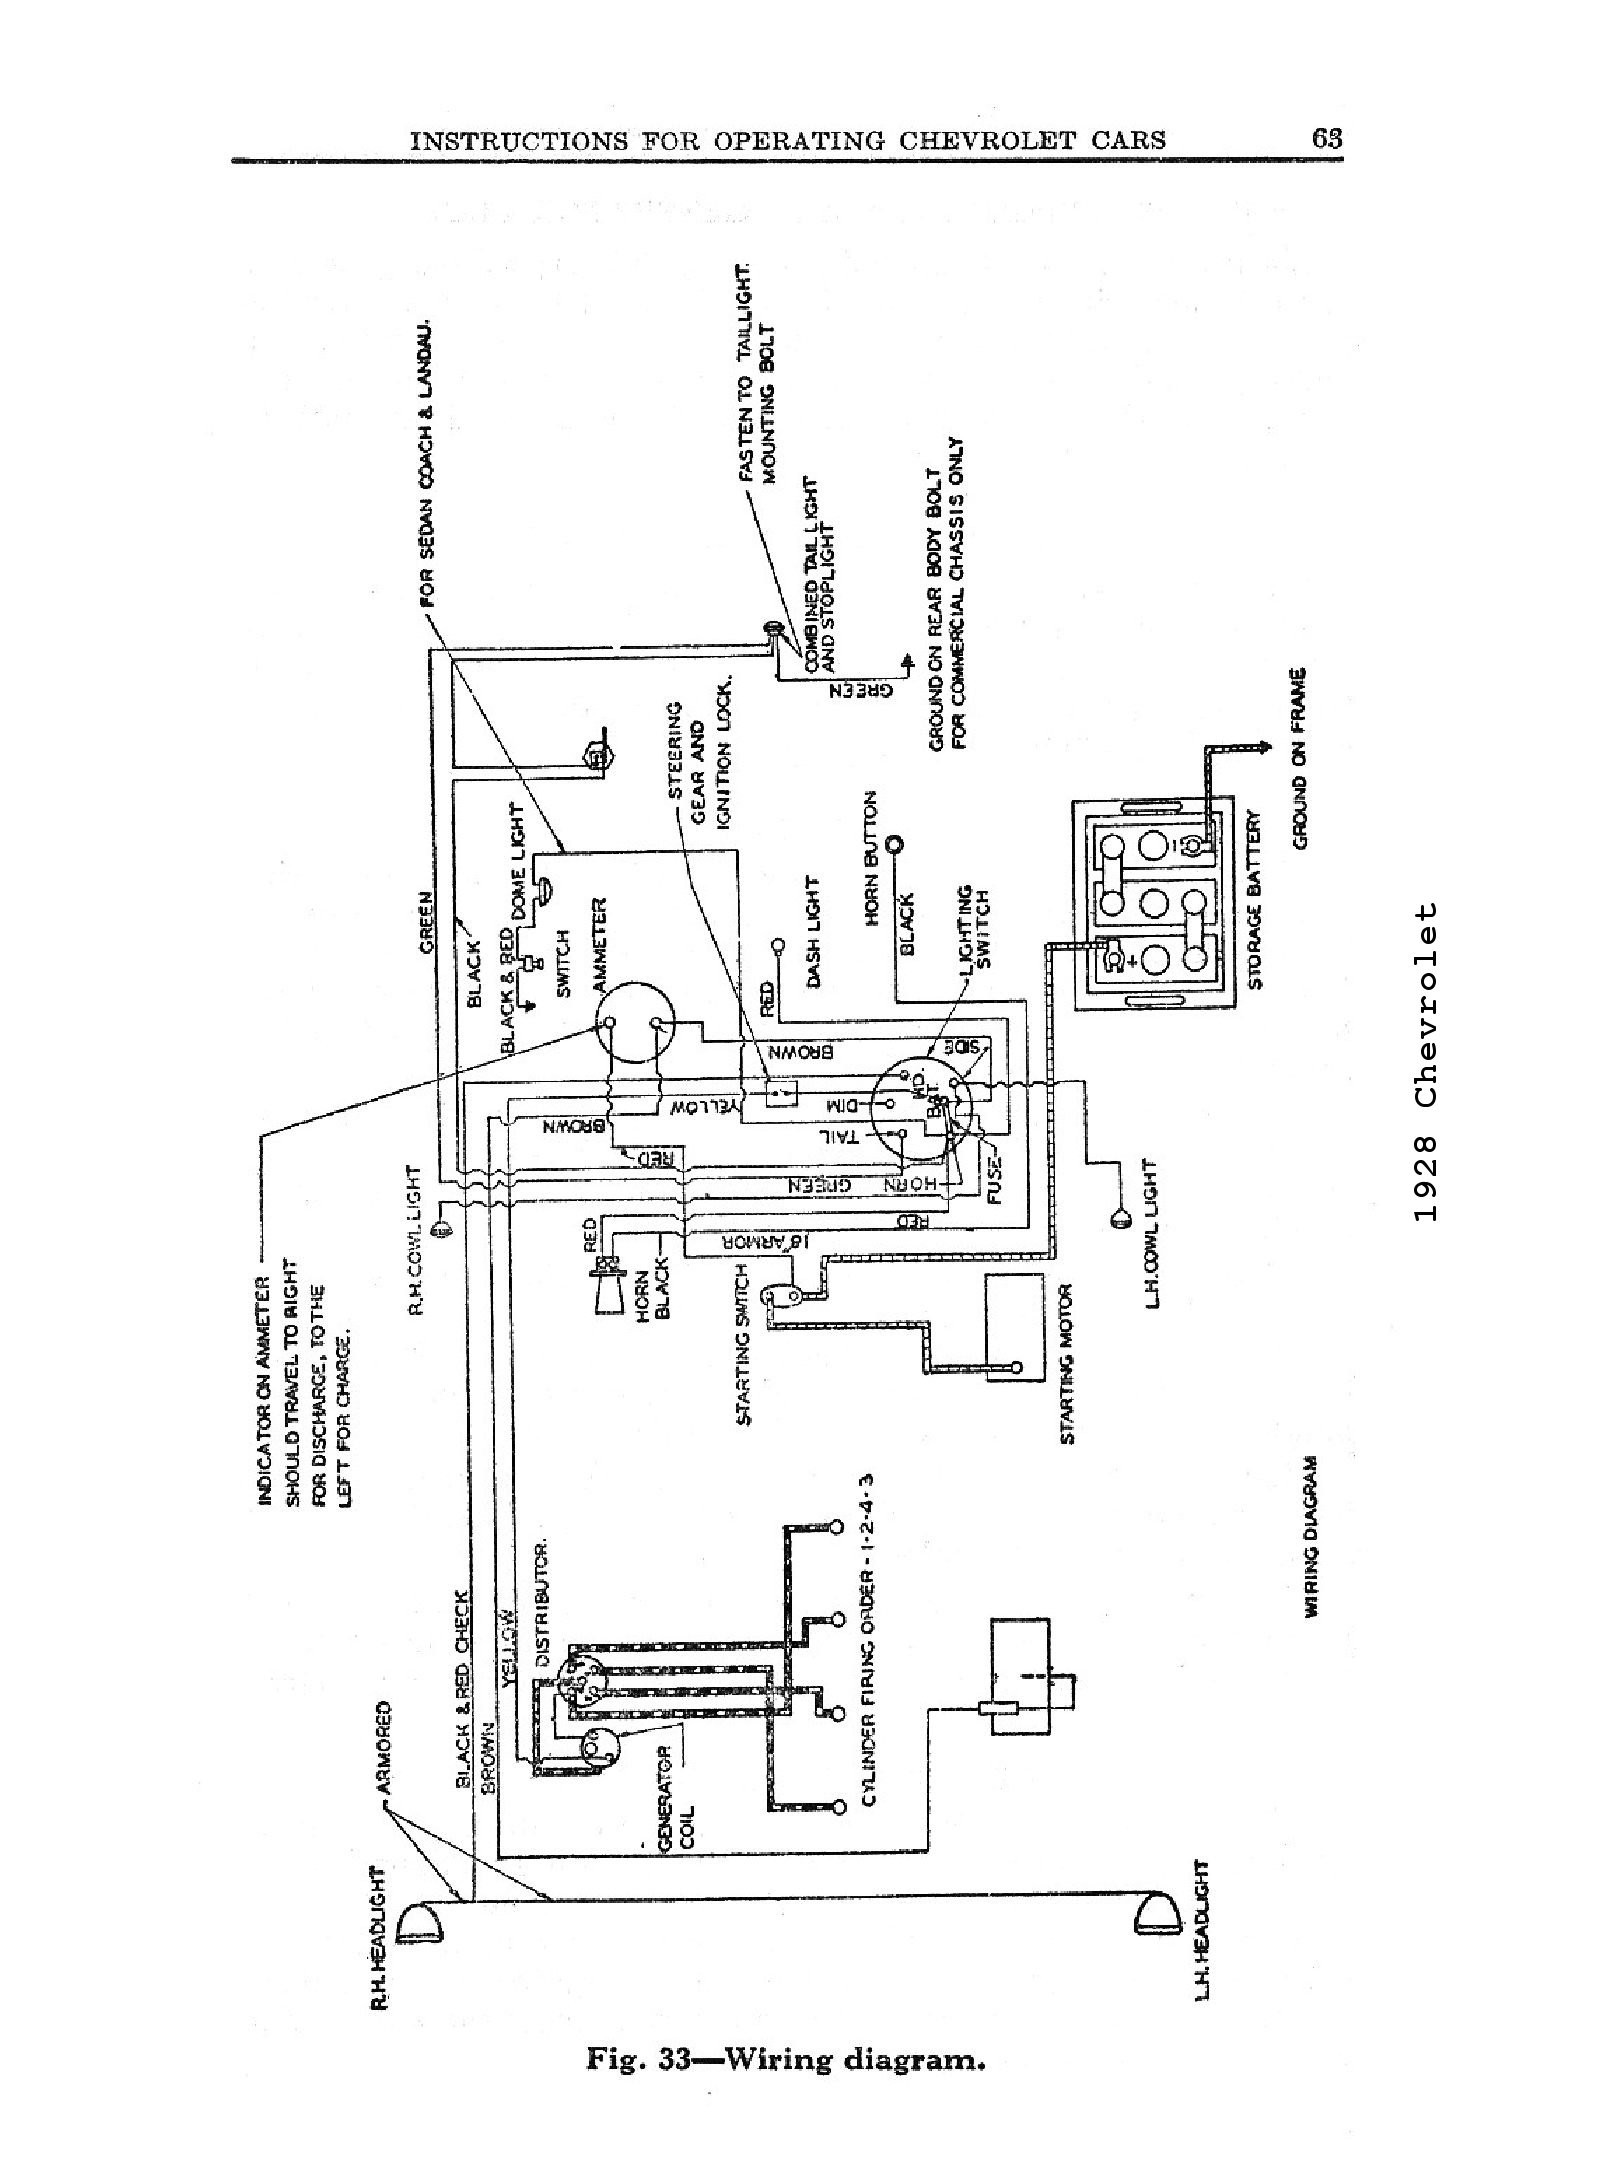 72 Chevy Pickup Wiring Diagram - Trusted Wiring Diagram